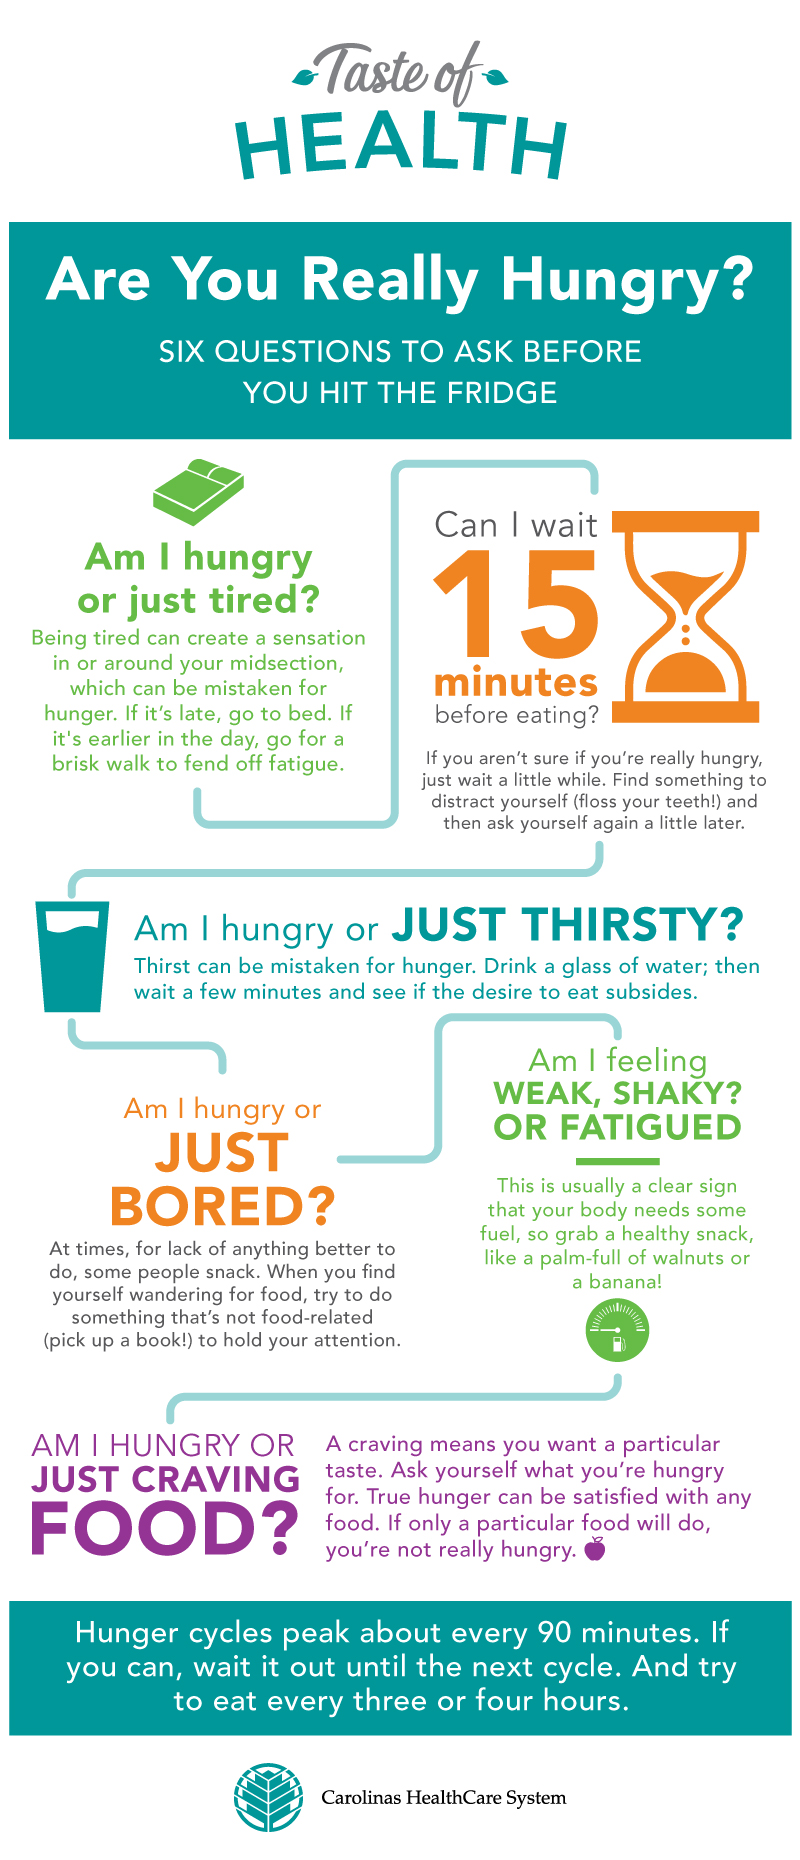 Are You Really Hungry? [Infographic]